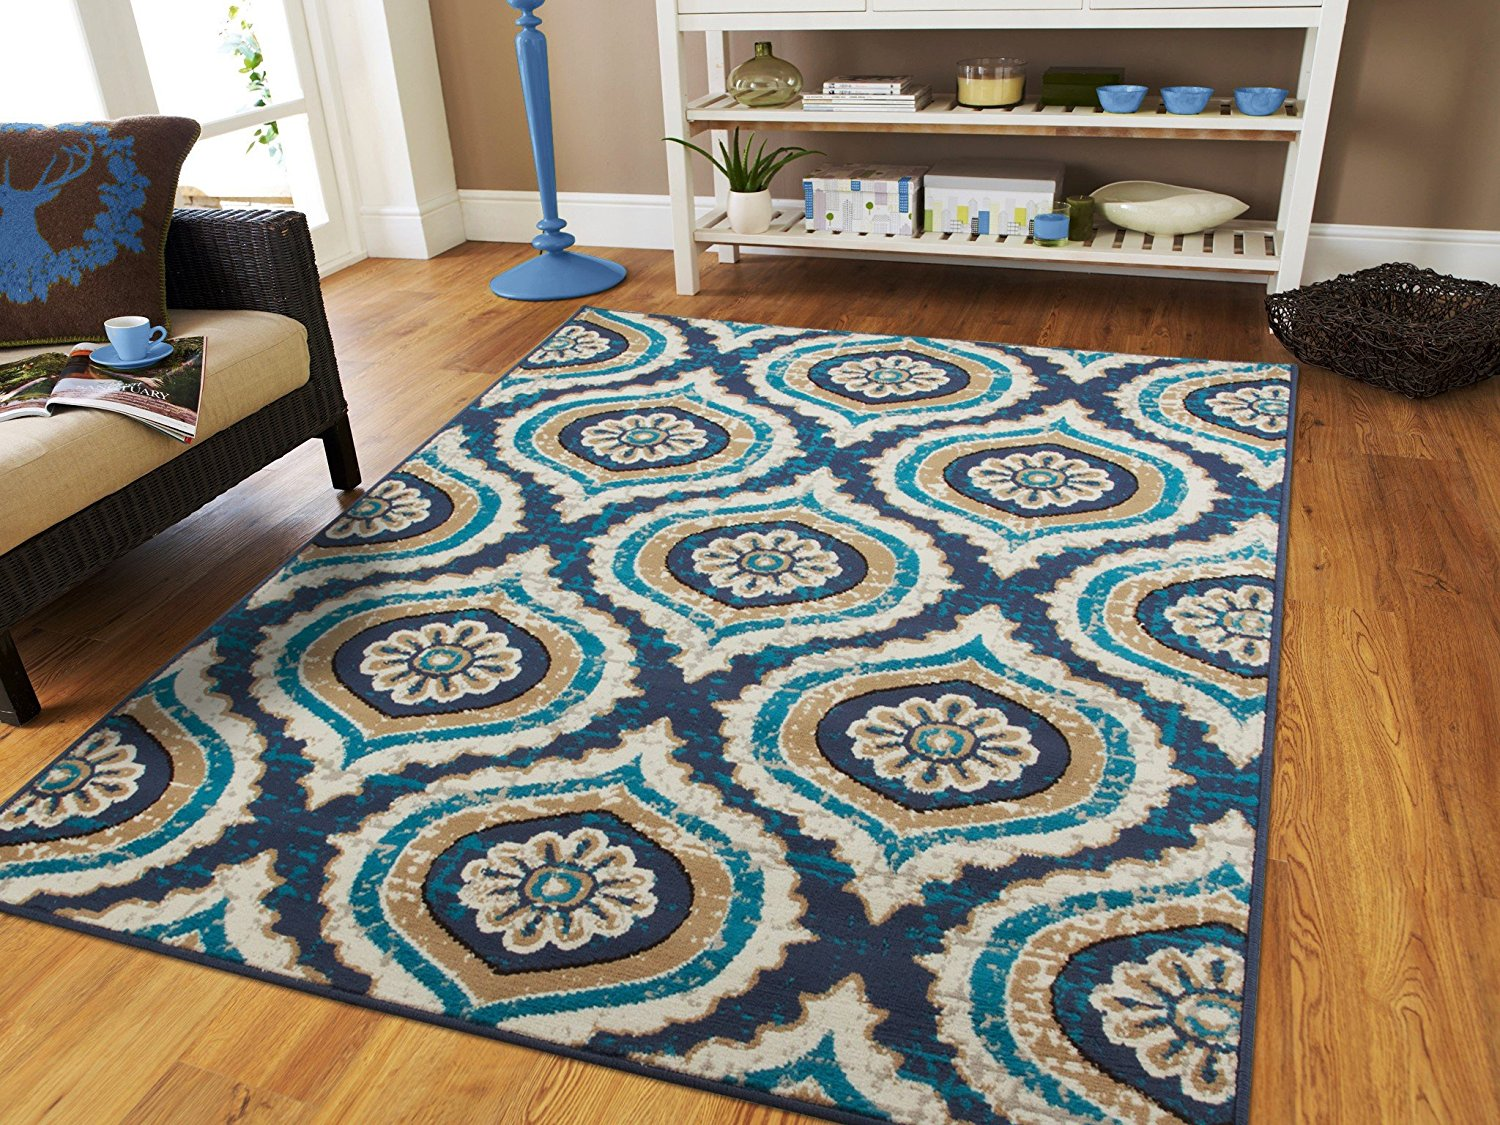 Attractive Century Rugs Blue Dining Room Rug For Under The Table 8x10 Contemporary  Area Rugs 8x11 Navy